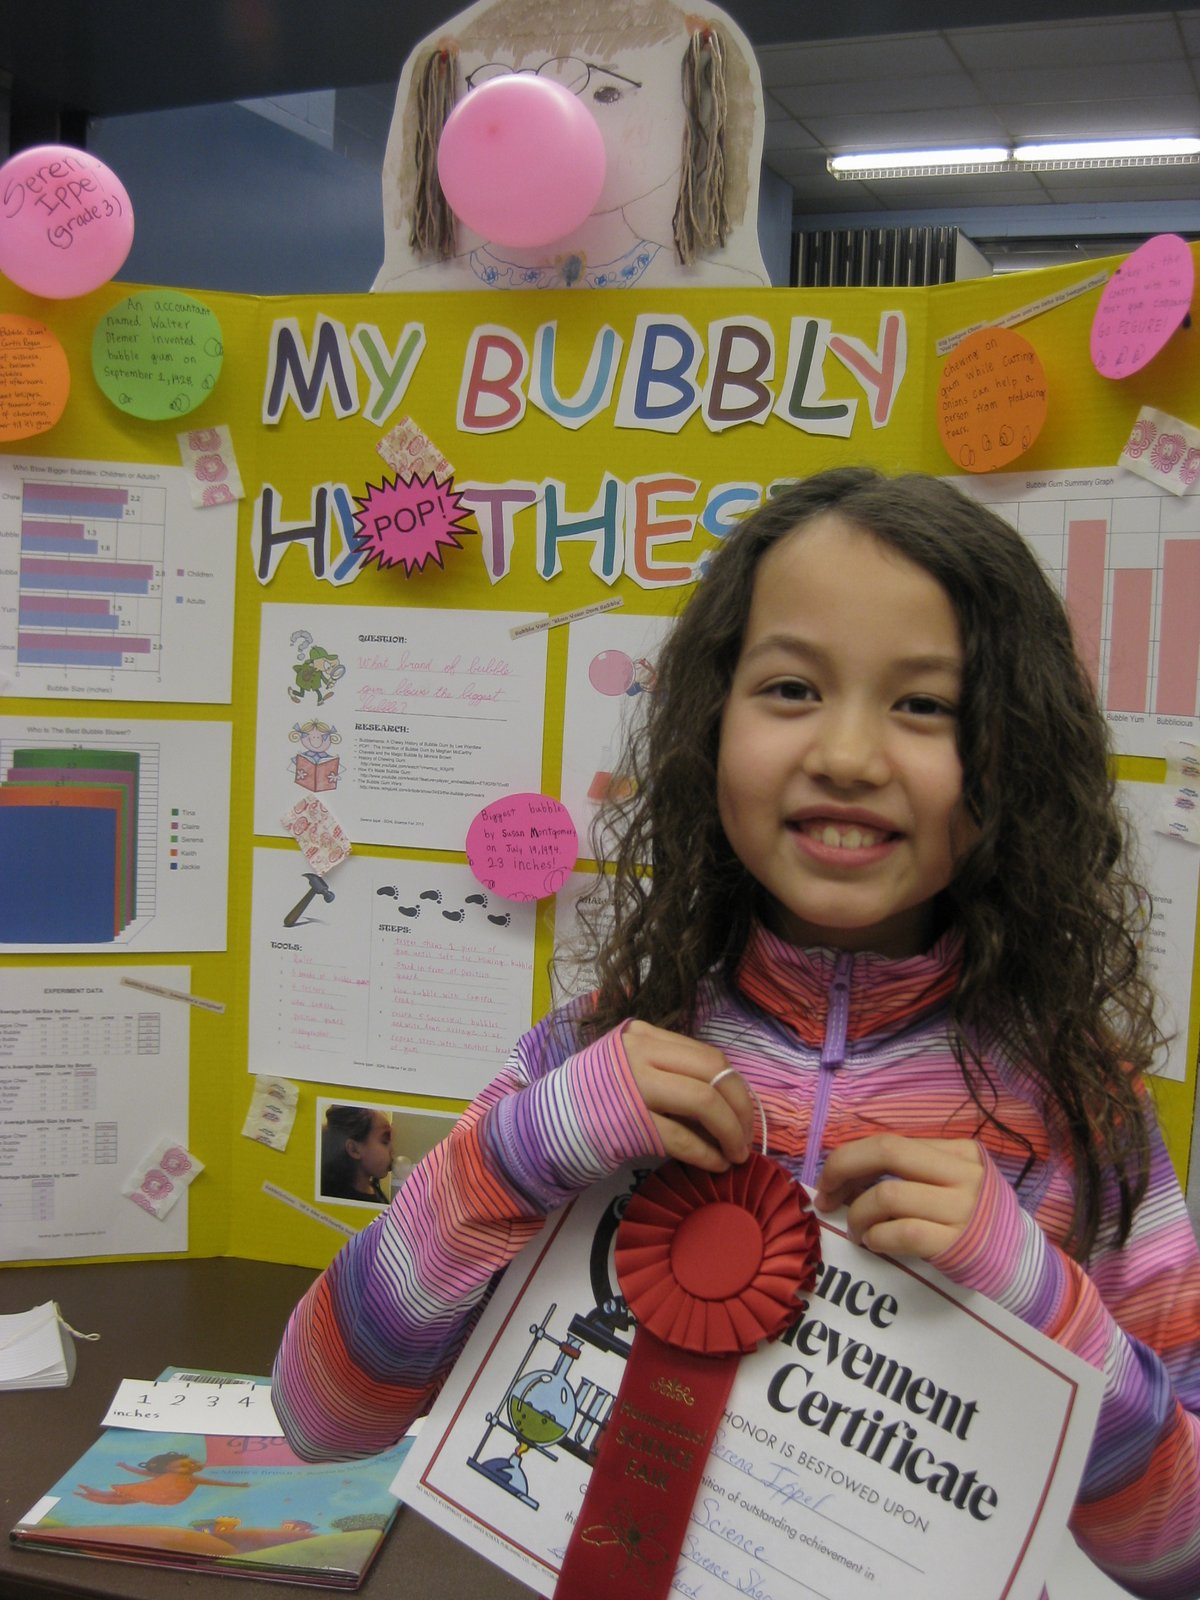 Or shiny experiment education likewise 1st place science fair projects